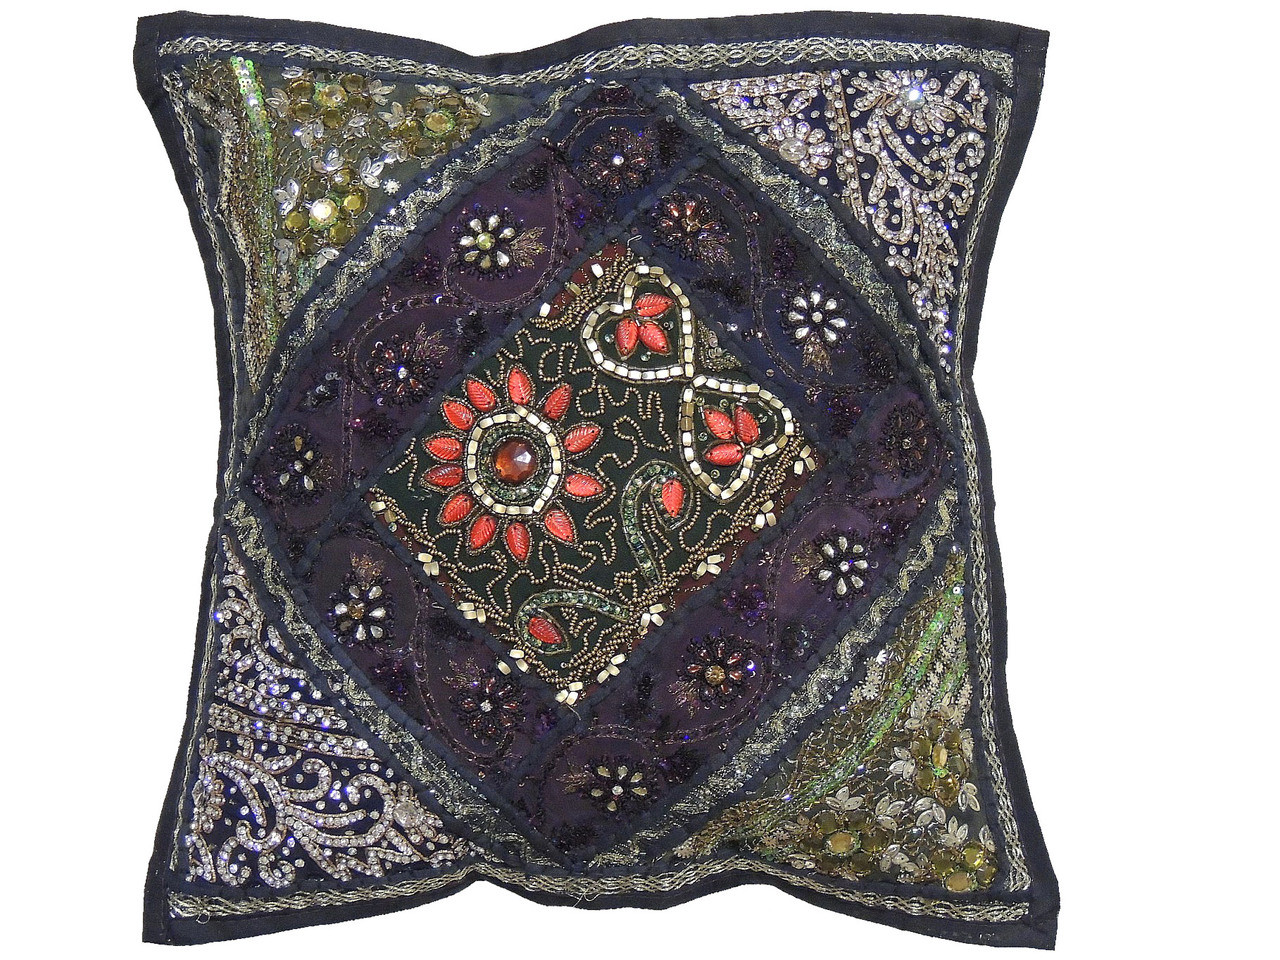 Black Beaded Throw Pillow : Black Unique Handmade Throw Pillow Cover - Beaded Sari Patchwork Cushion 16